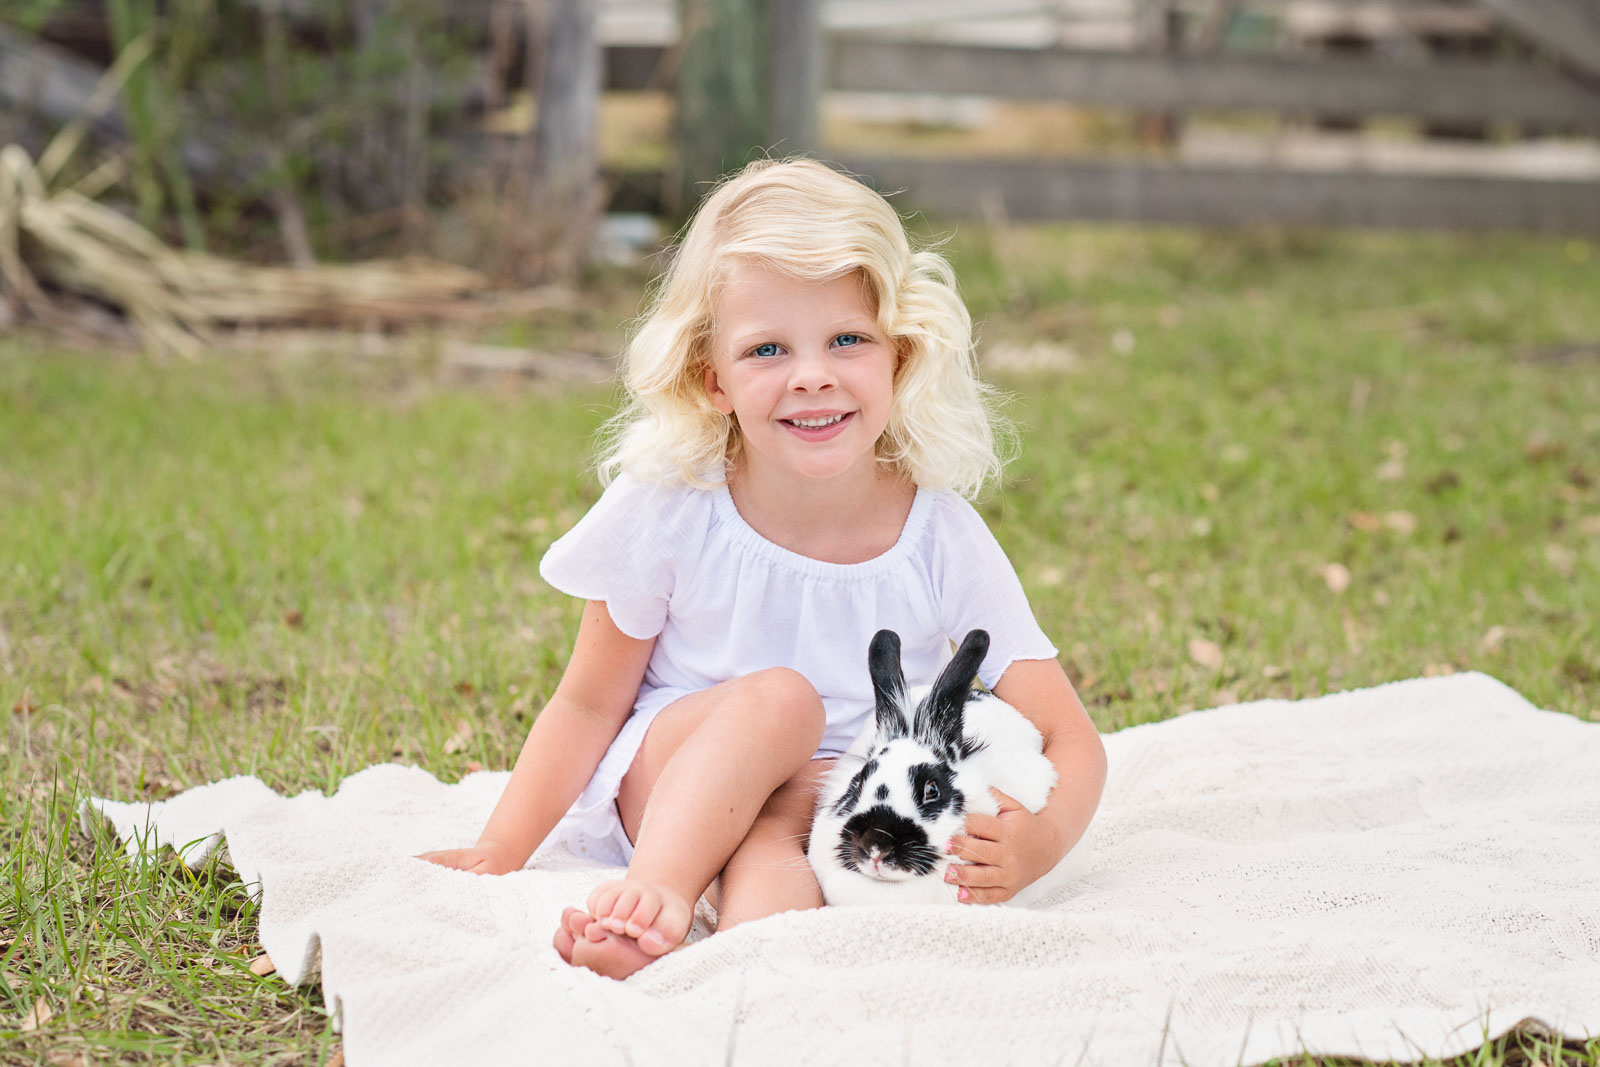 photo-sessions-children-animals-01-3.jpg